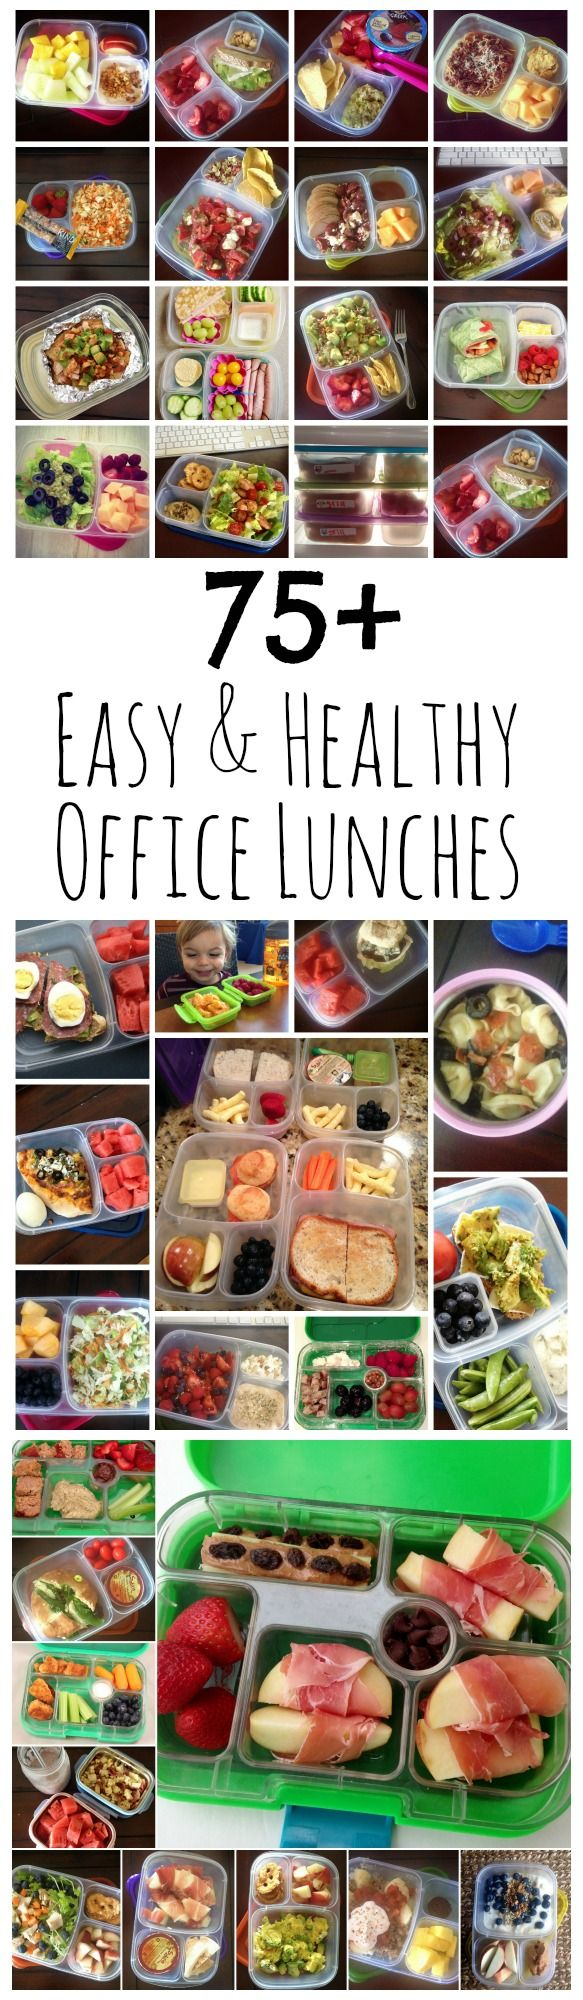 75+ Easy & Healthy Office Lunch Ideas from